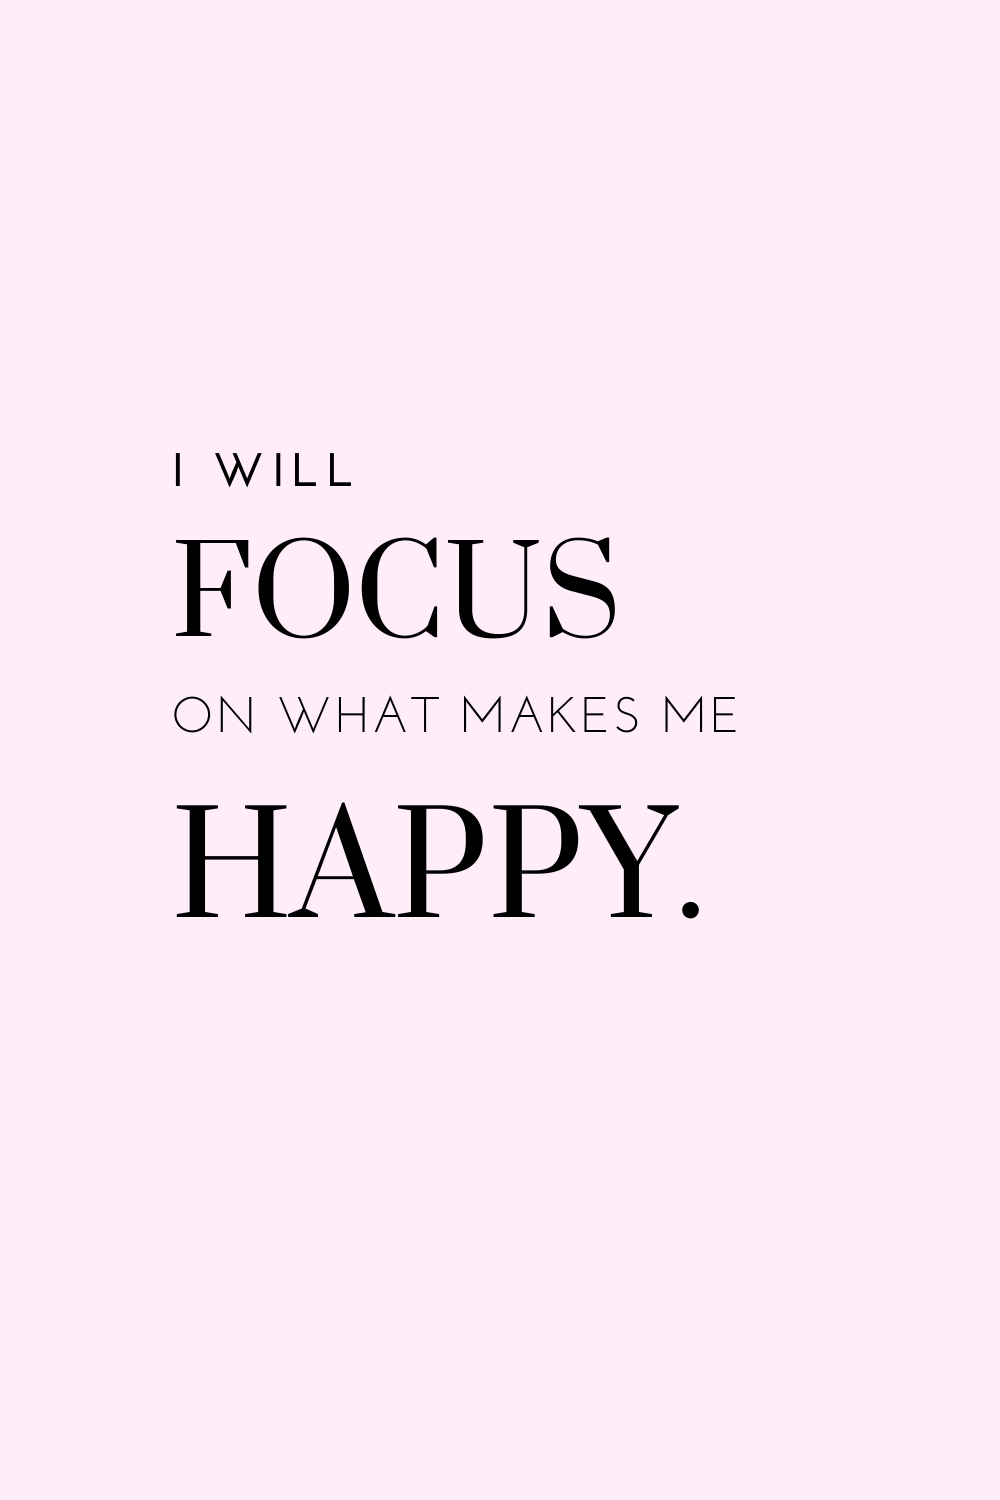 i will focus on what makes me happy